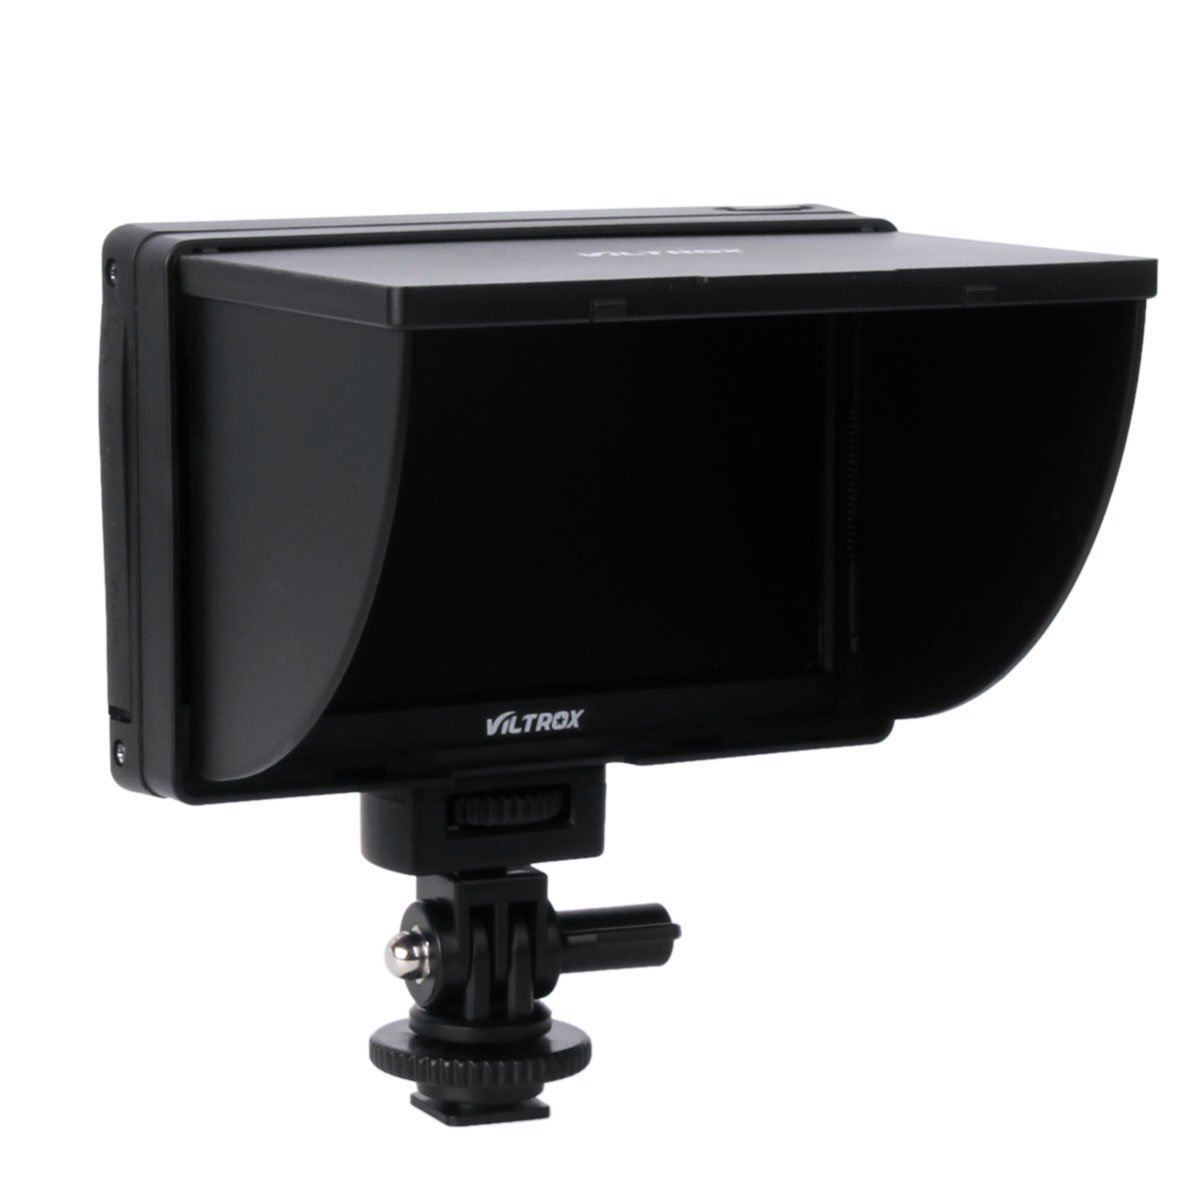 PROST Viltrox DC-50 HD Clip-on Portable 5' LCD Monitor with HDMI Video Input with Standard & Sony Shoes for Canon Nikon Sony